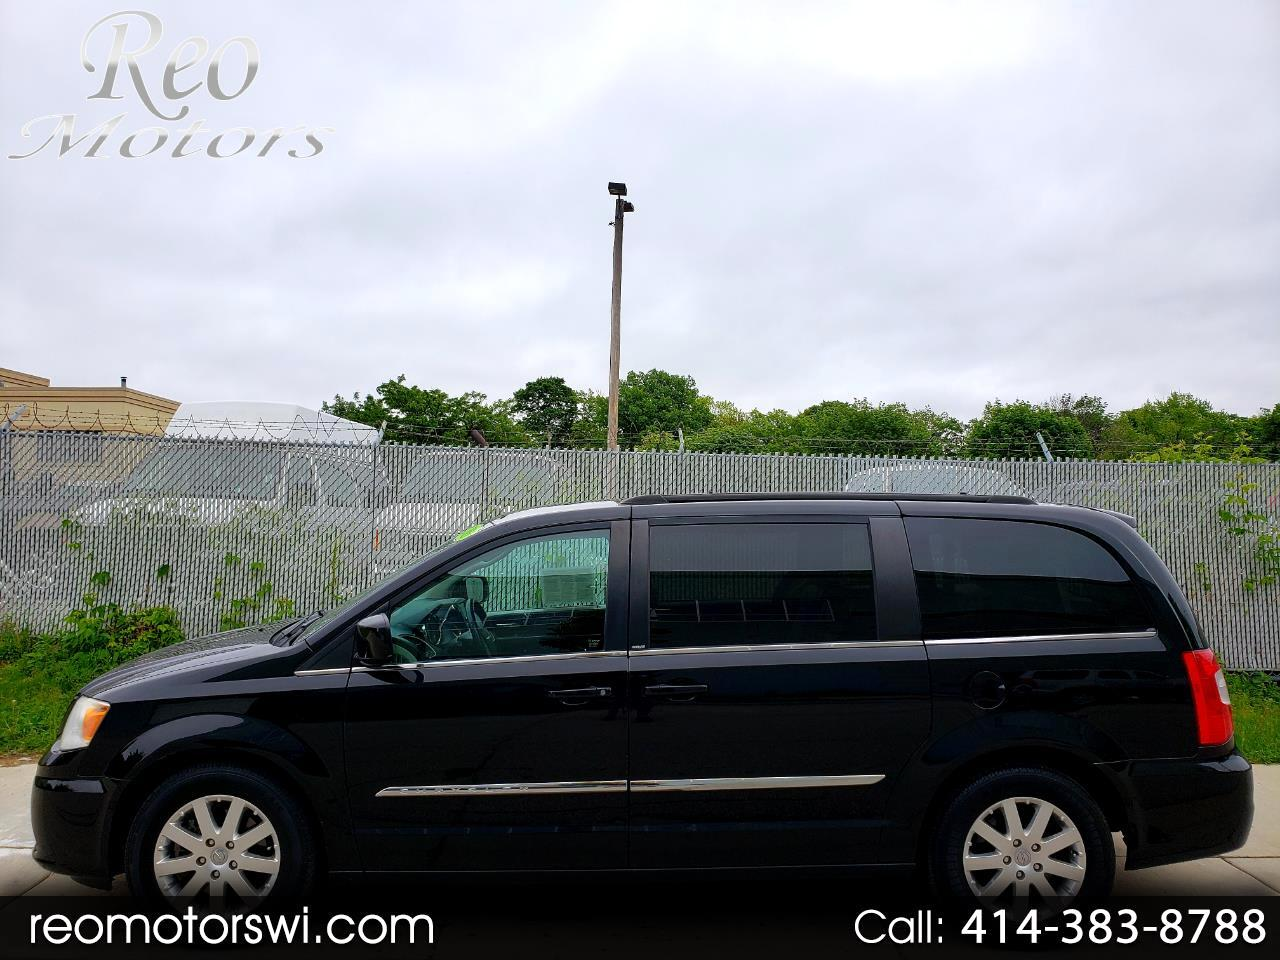 2013 Chrysler Town & Country FWD